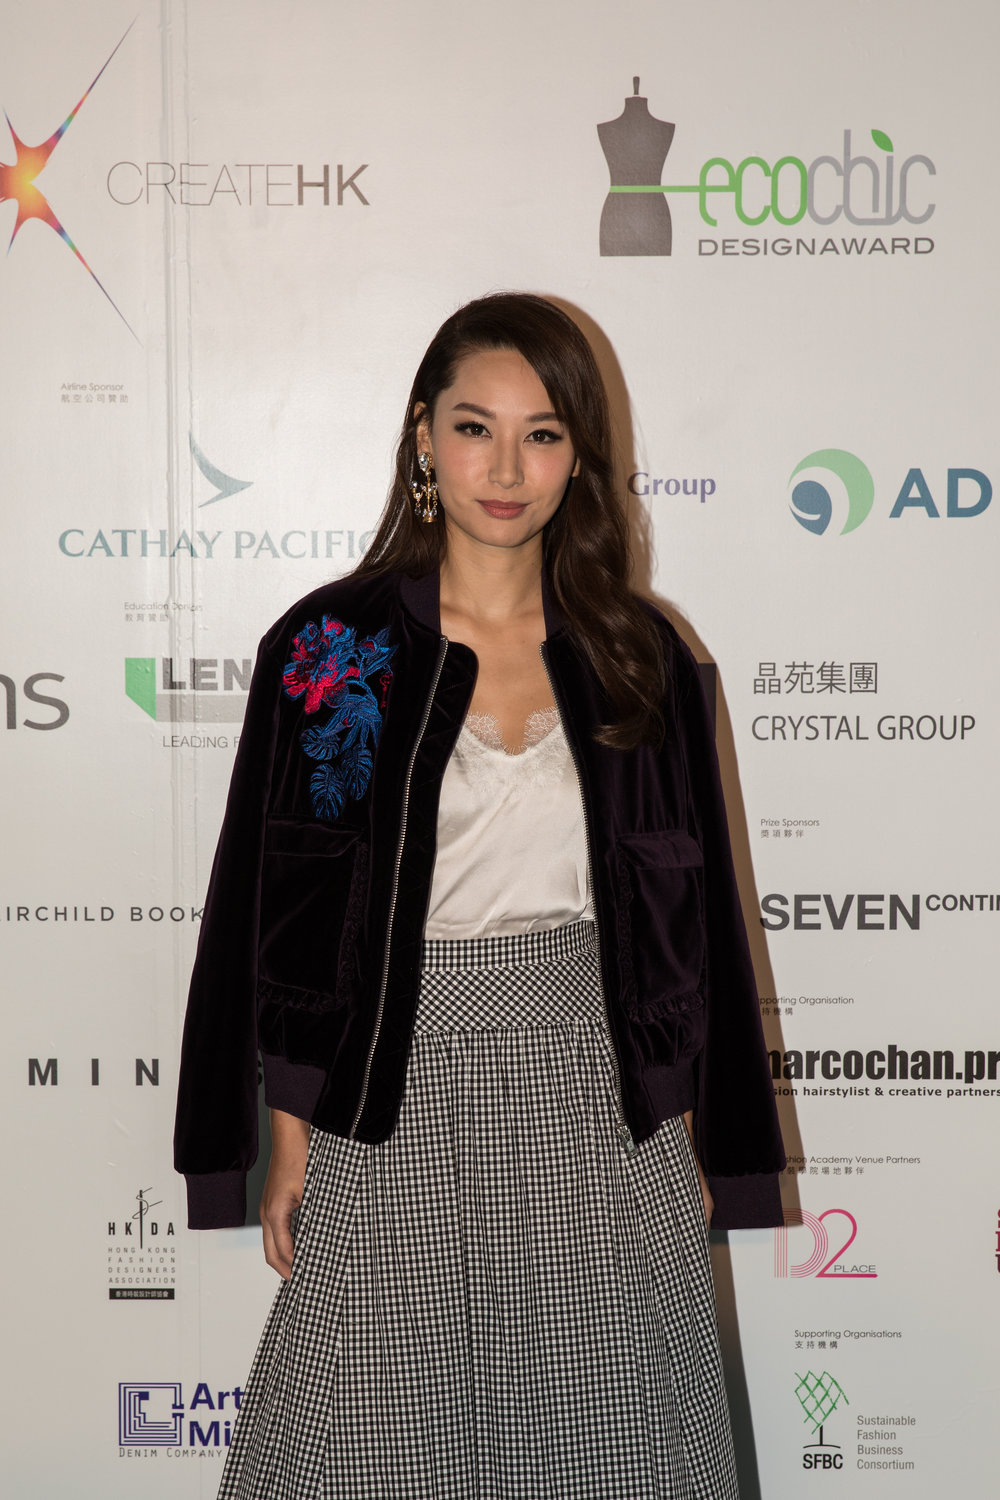 Redress Design Award 2017 ambassador Kate Tsui wears Shanghai Tang x EcoChic designed by Patrycja Guzik to attend the Redress Design Award 2017 Grand Final Show